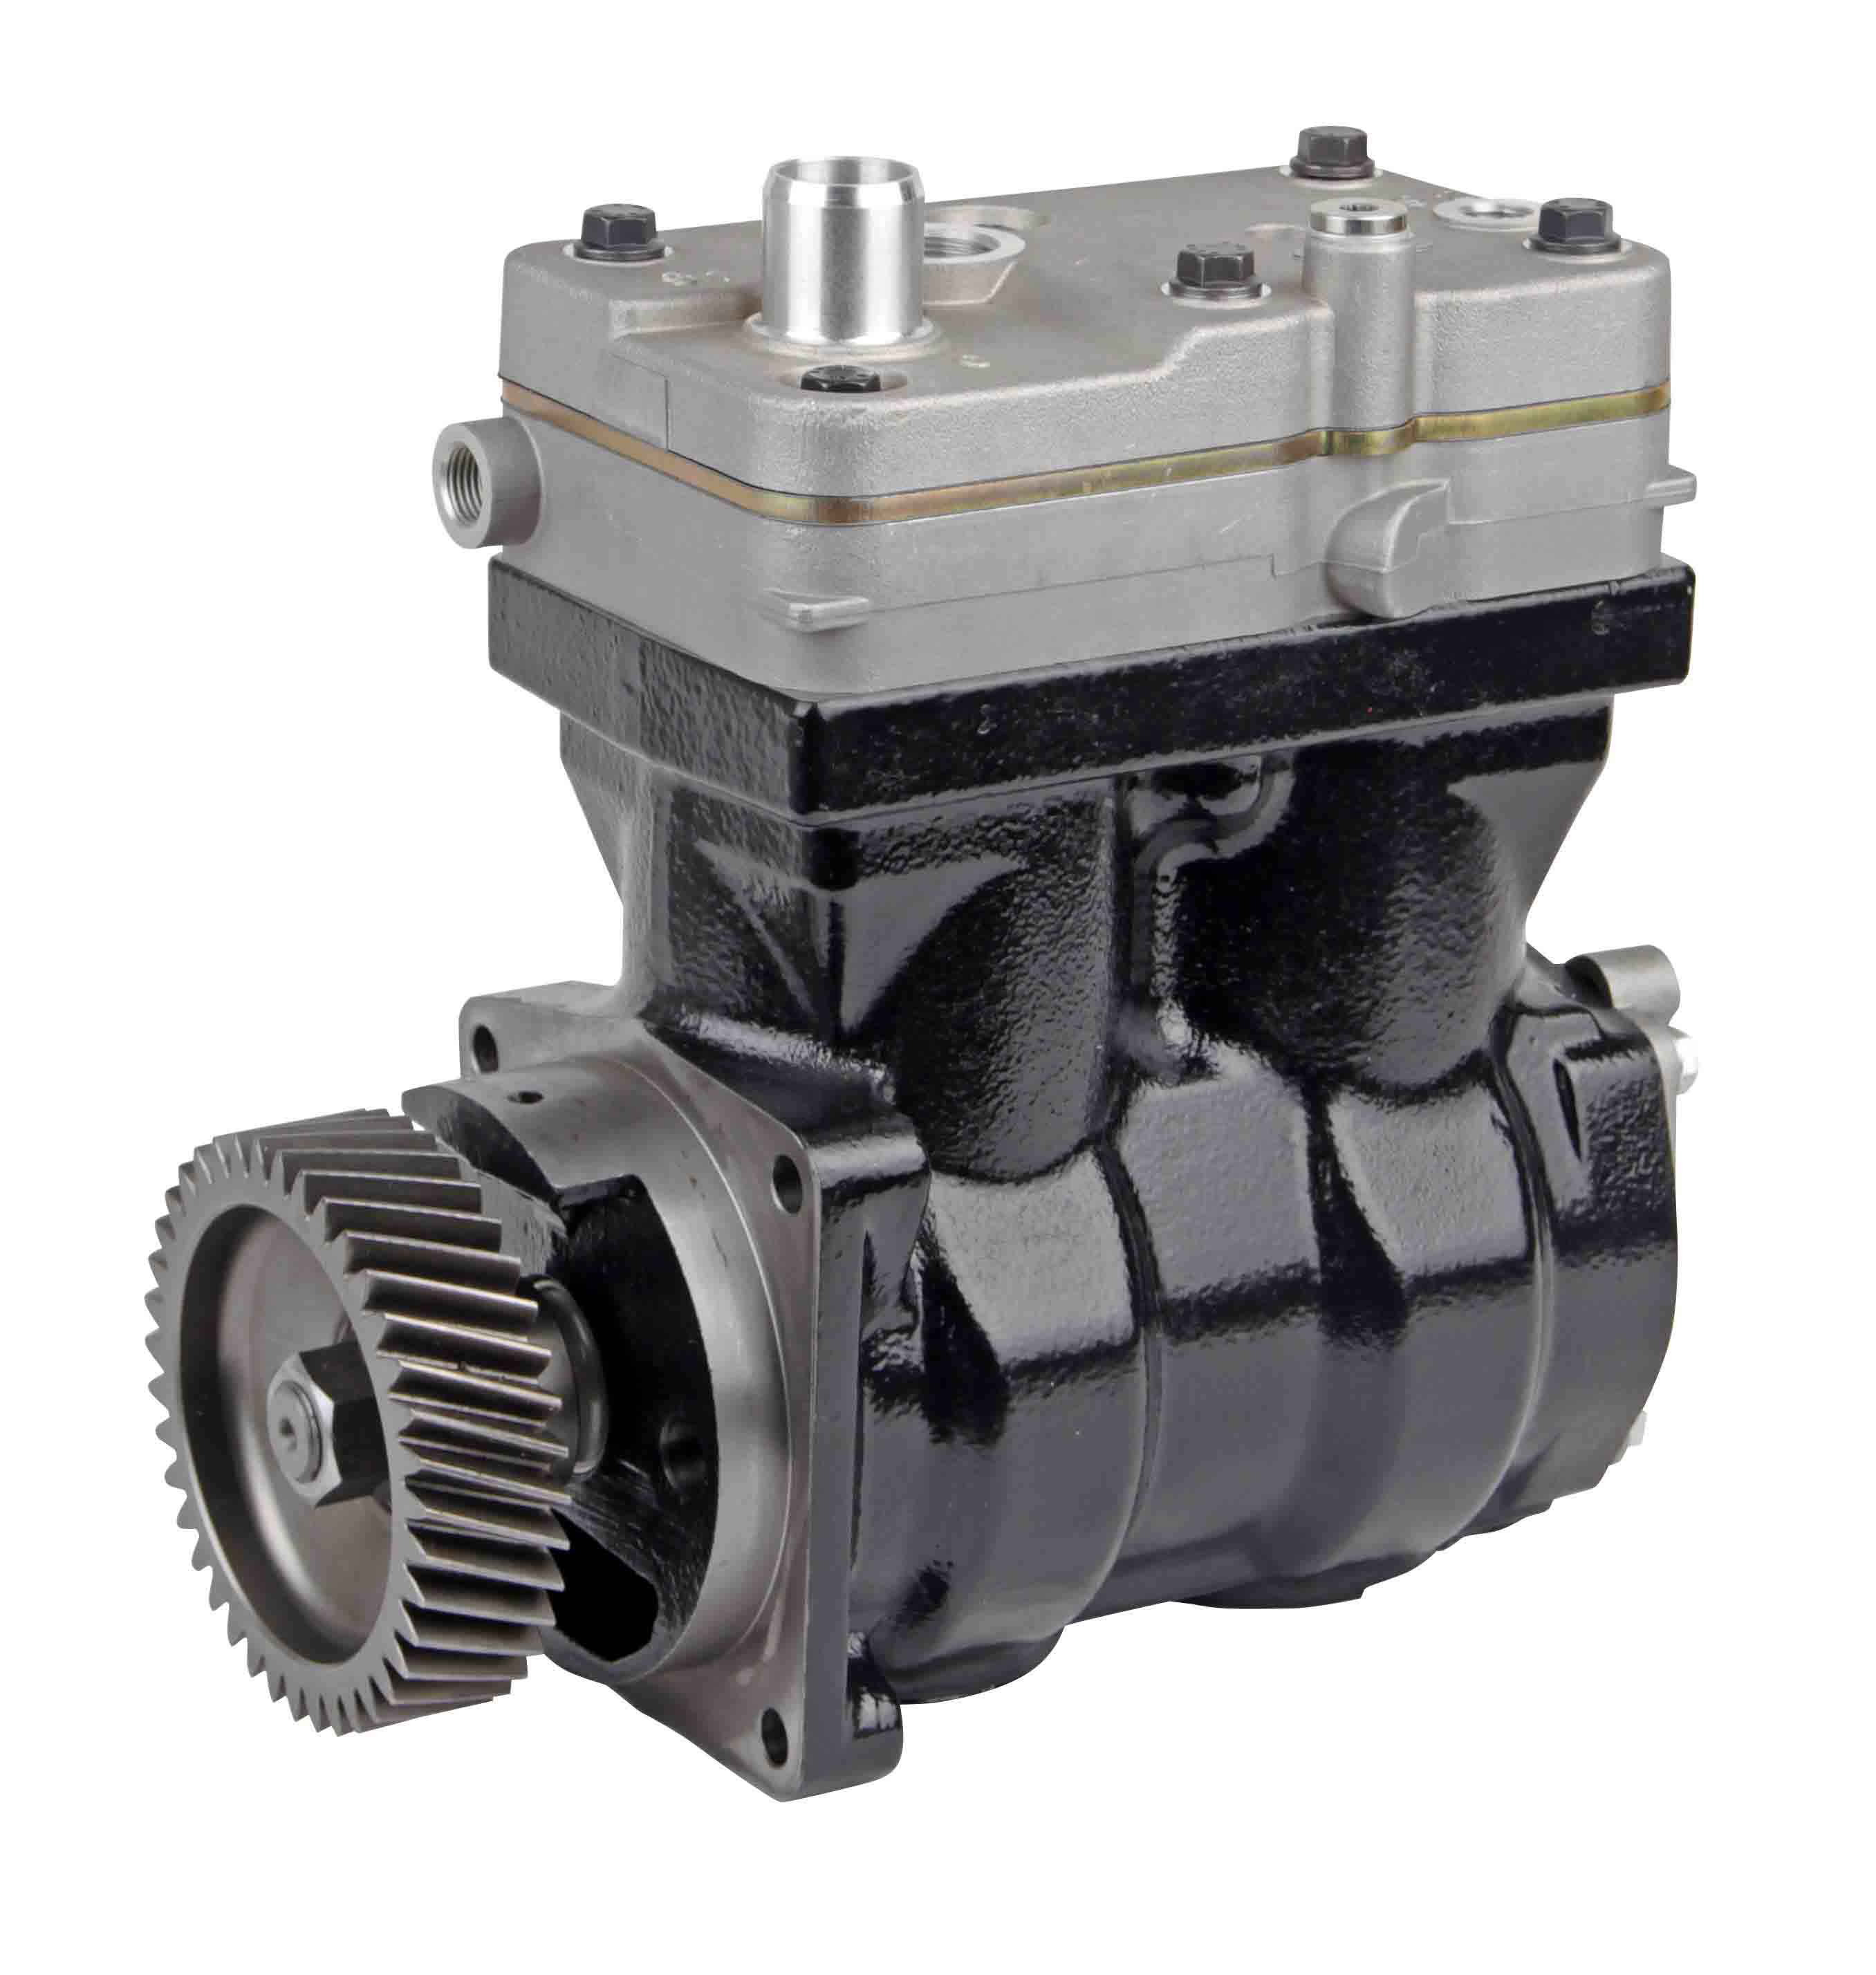 MERCEDES AIR COMPRESSOR ARC-EXP.303993 9061304515